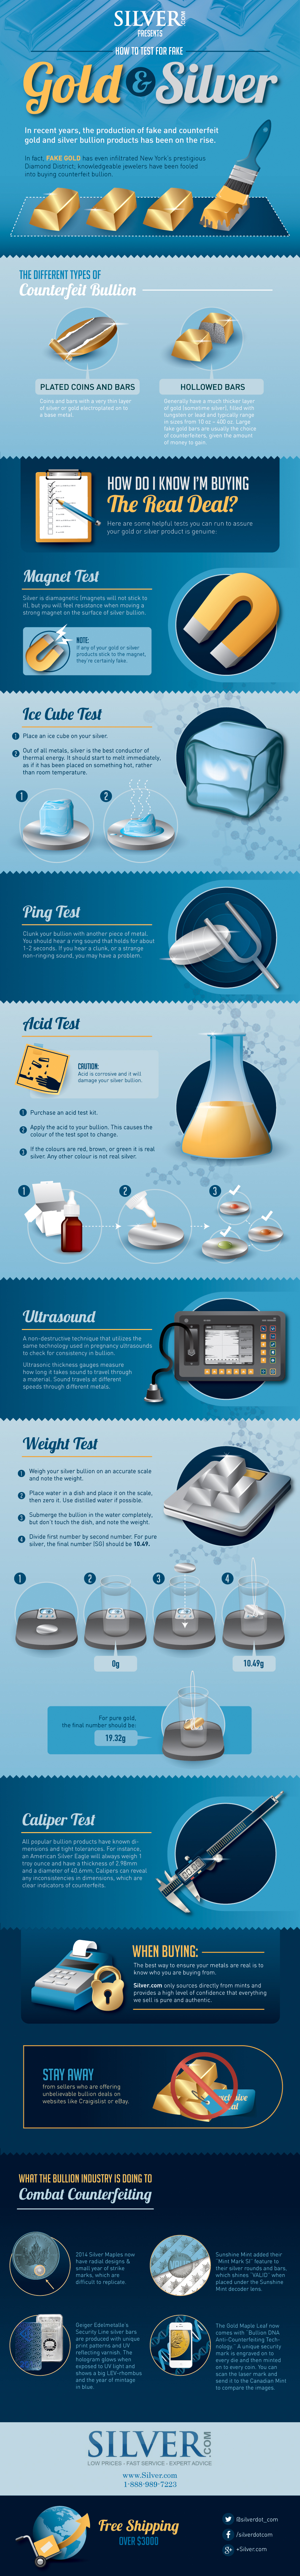 how-to-test-for-fake-gold-and-silver-infographic